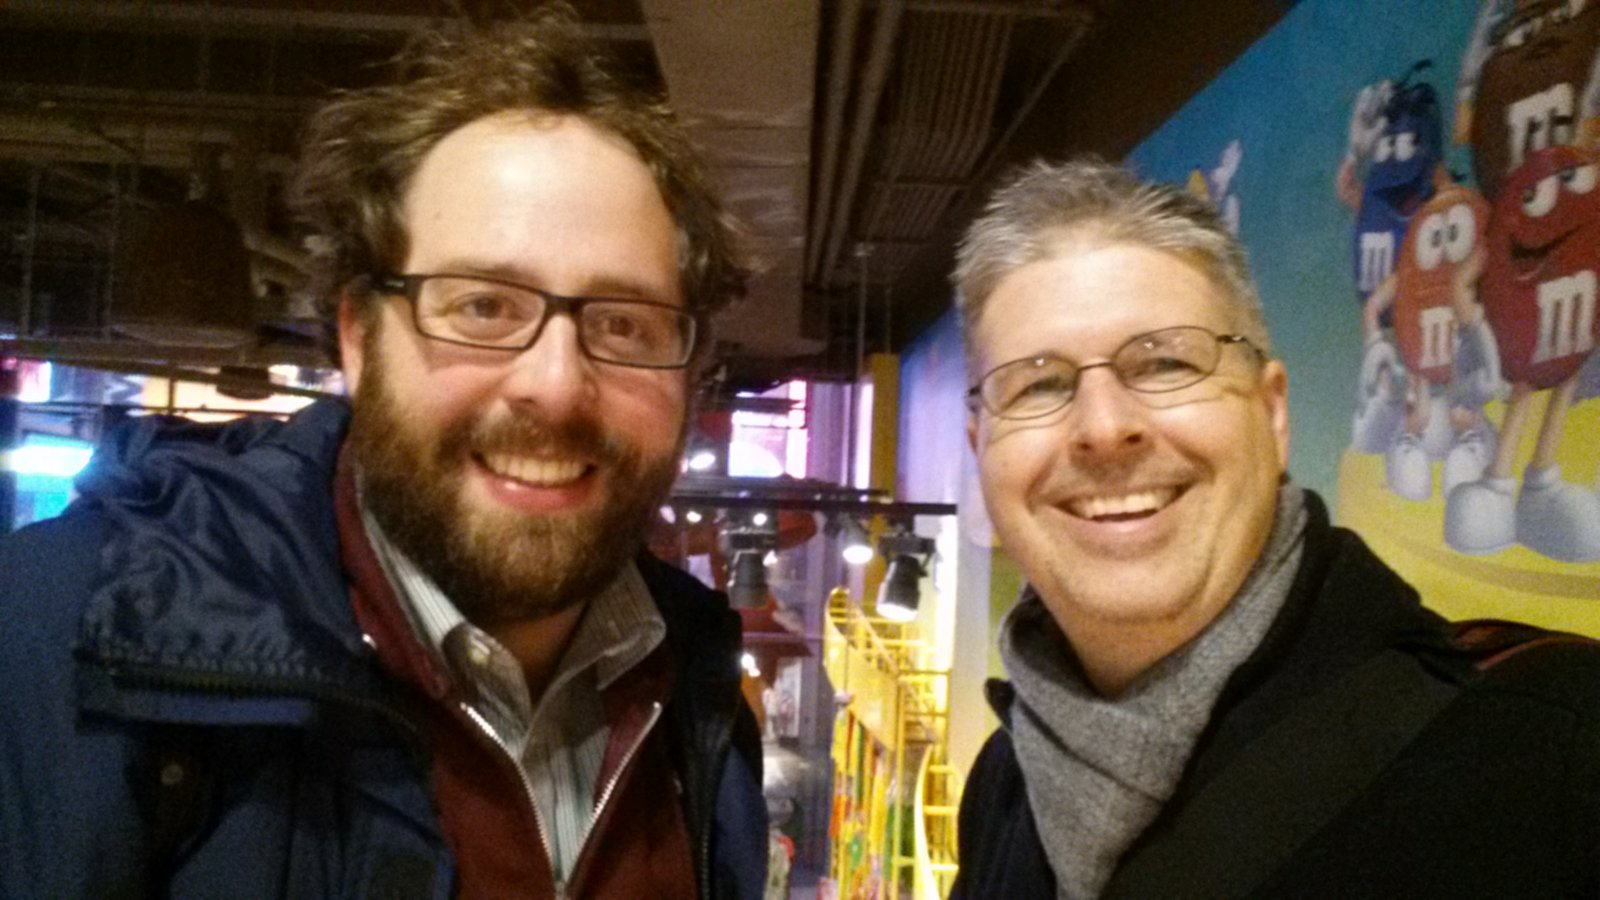 John Reuter (left) and Chuck Marohn in NYC, December 2014